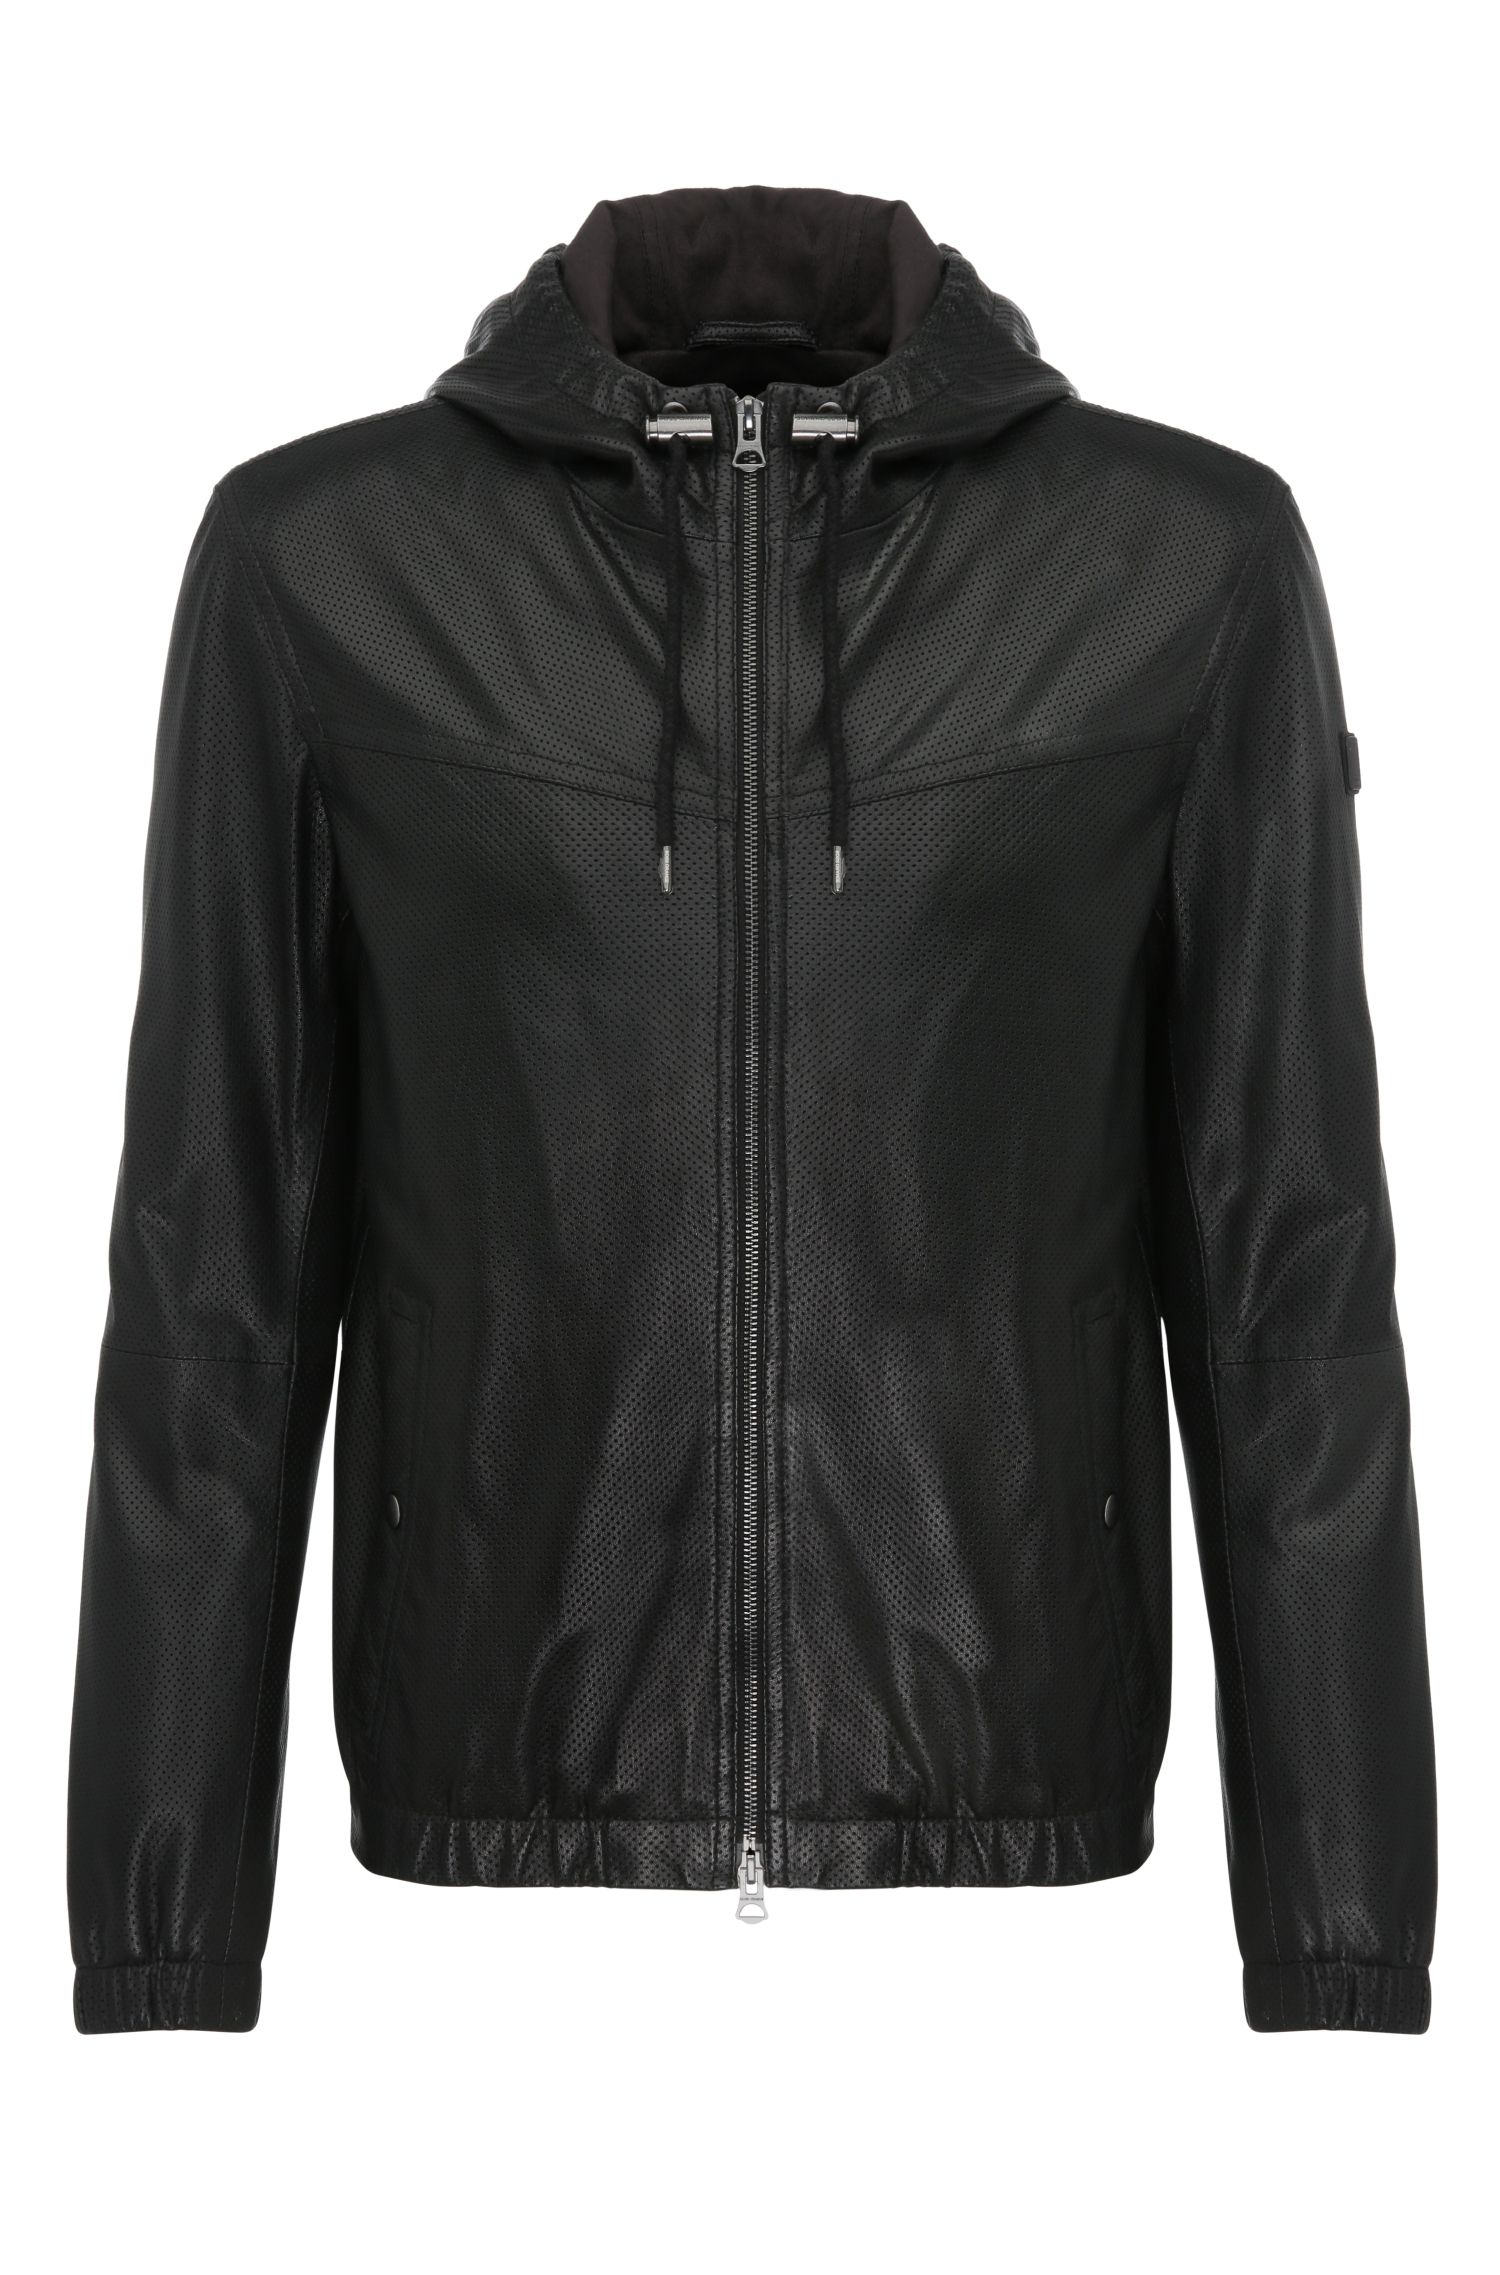 'Jainee' | Lambskin Perforated Hooded Blouson Jacket